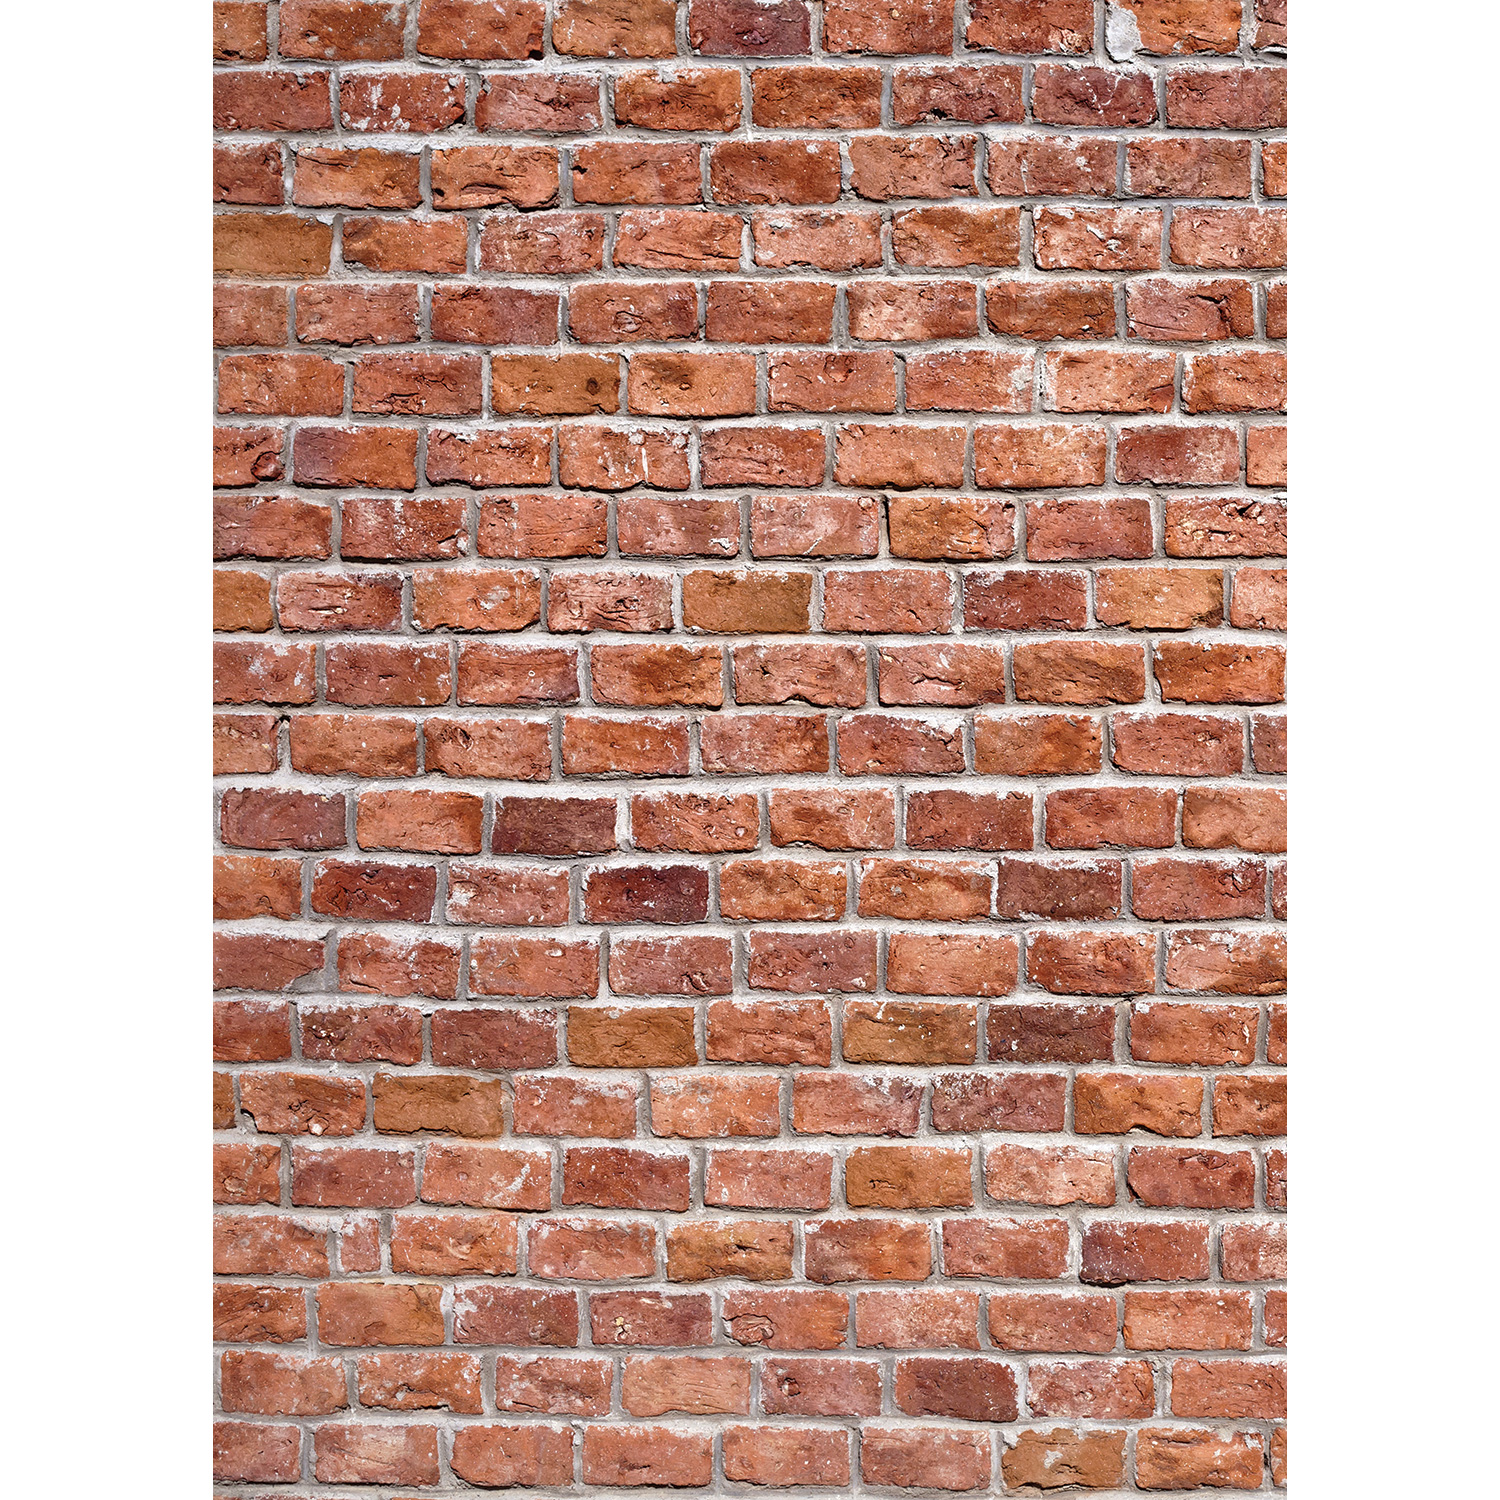 Classic Brick Wall Matte Vinyl Backdrop (5' x 7') - Multi-Color